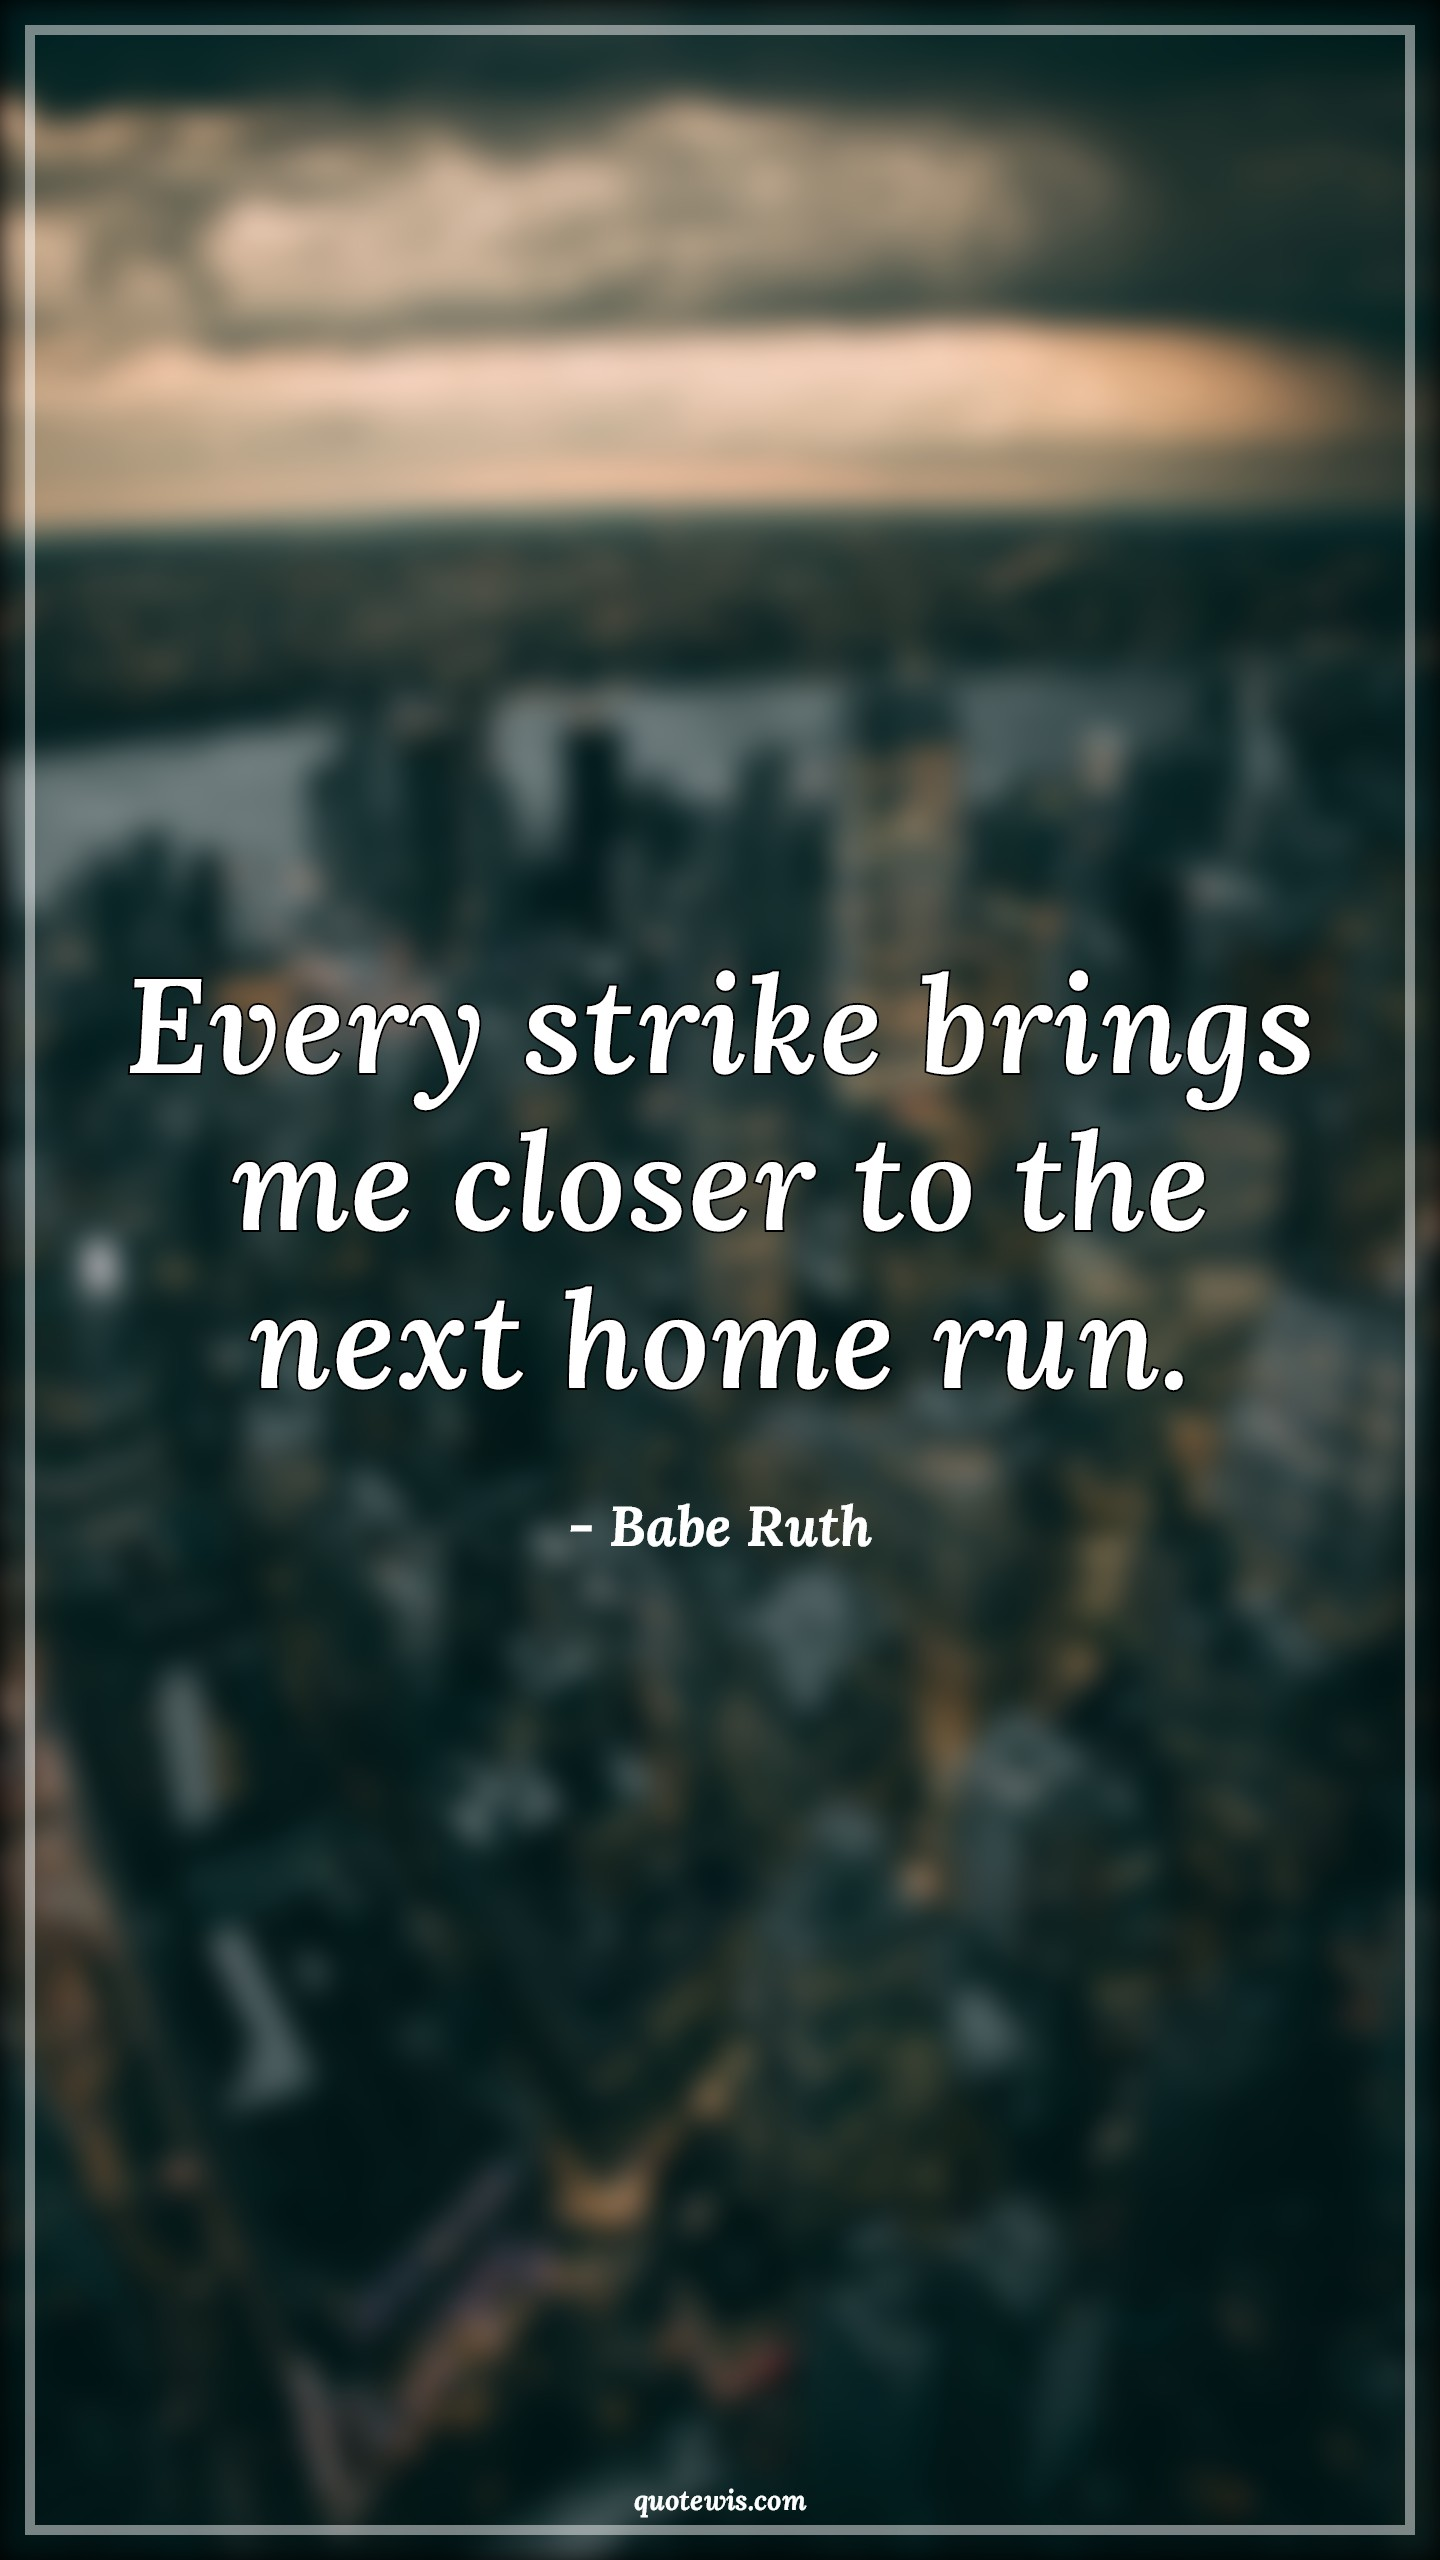 Every strike brings me closer to the next home run.